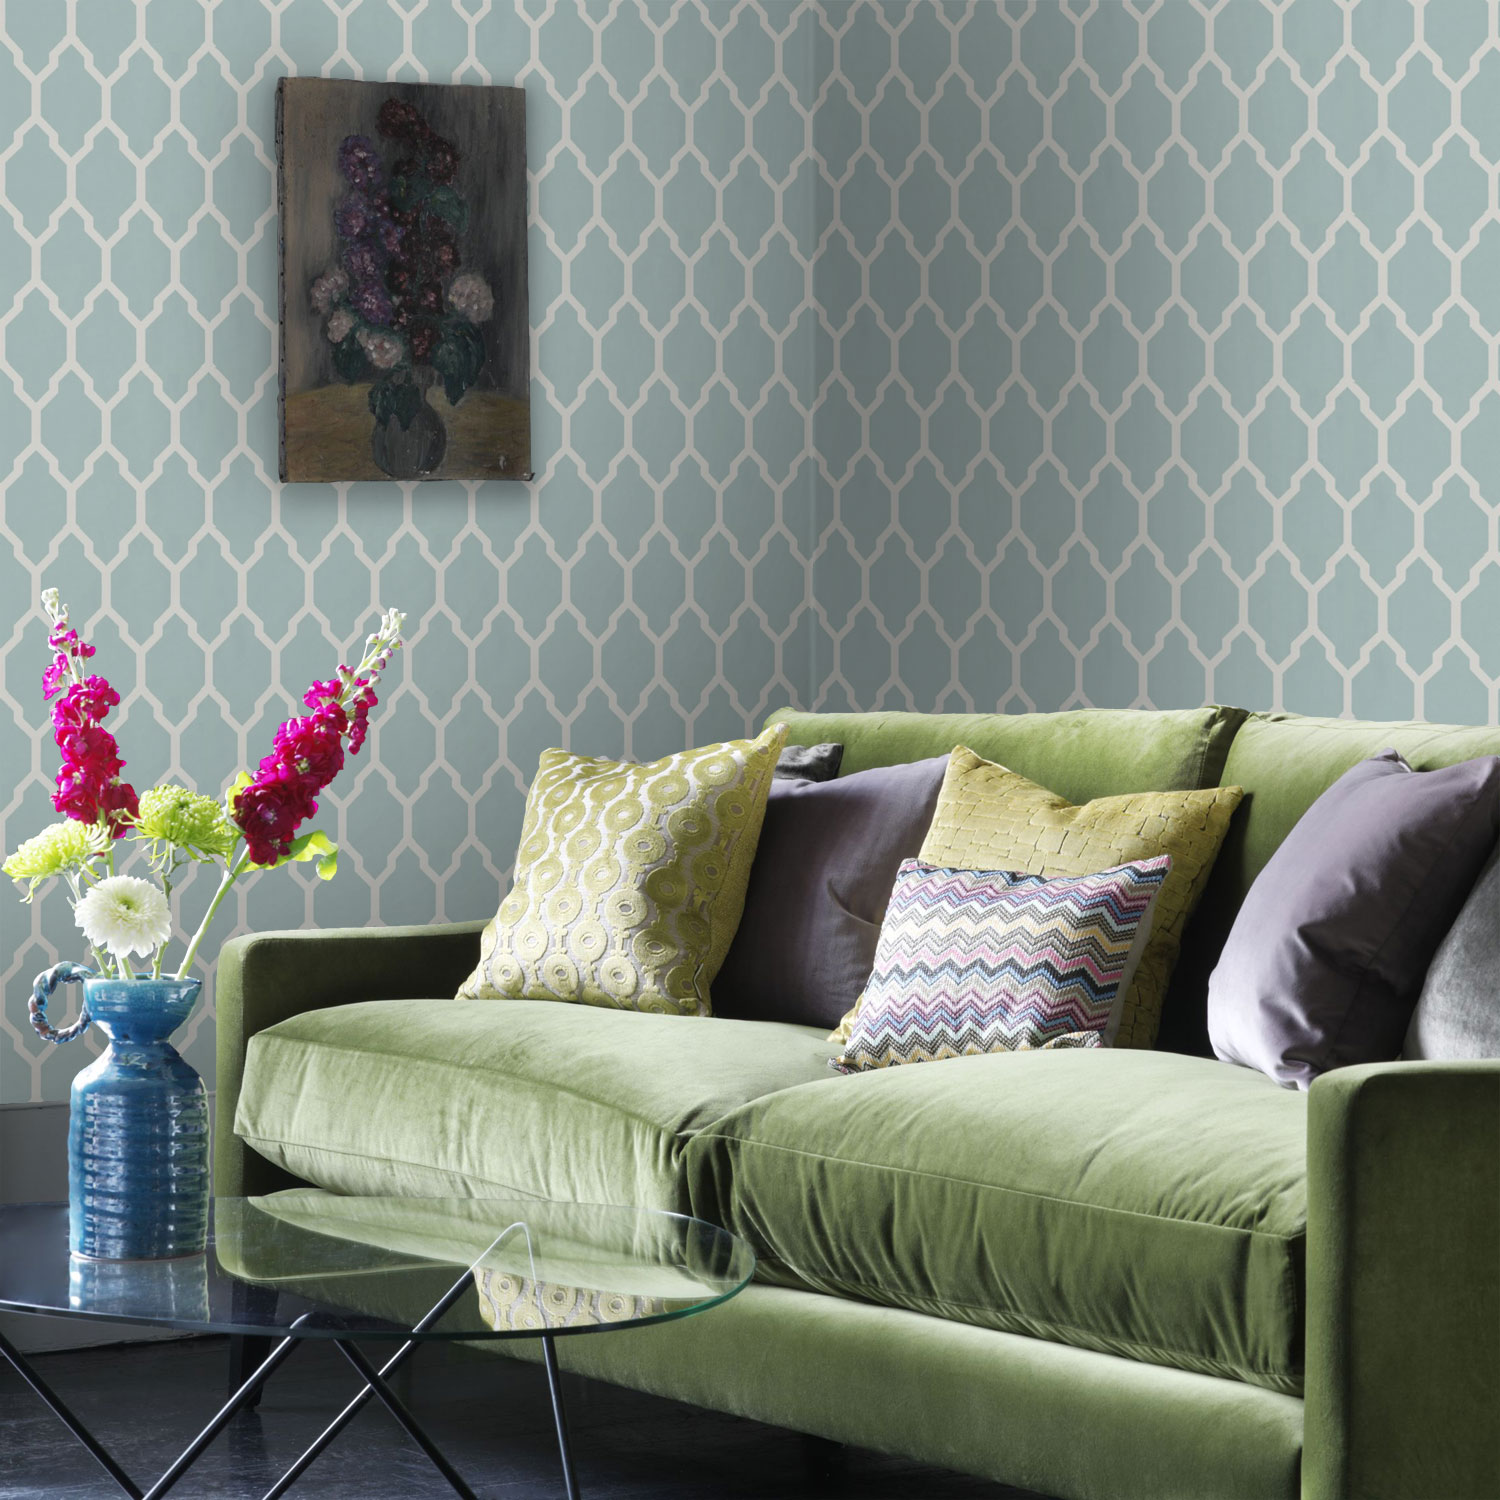 Delicately retouched images allow wallpapers to be dynamically previewed in a range of roomsets